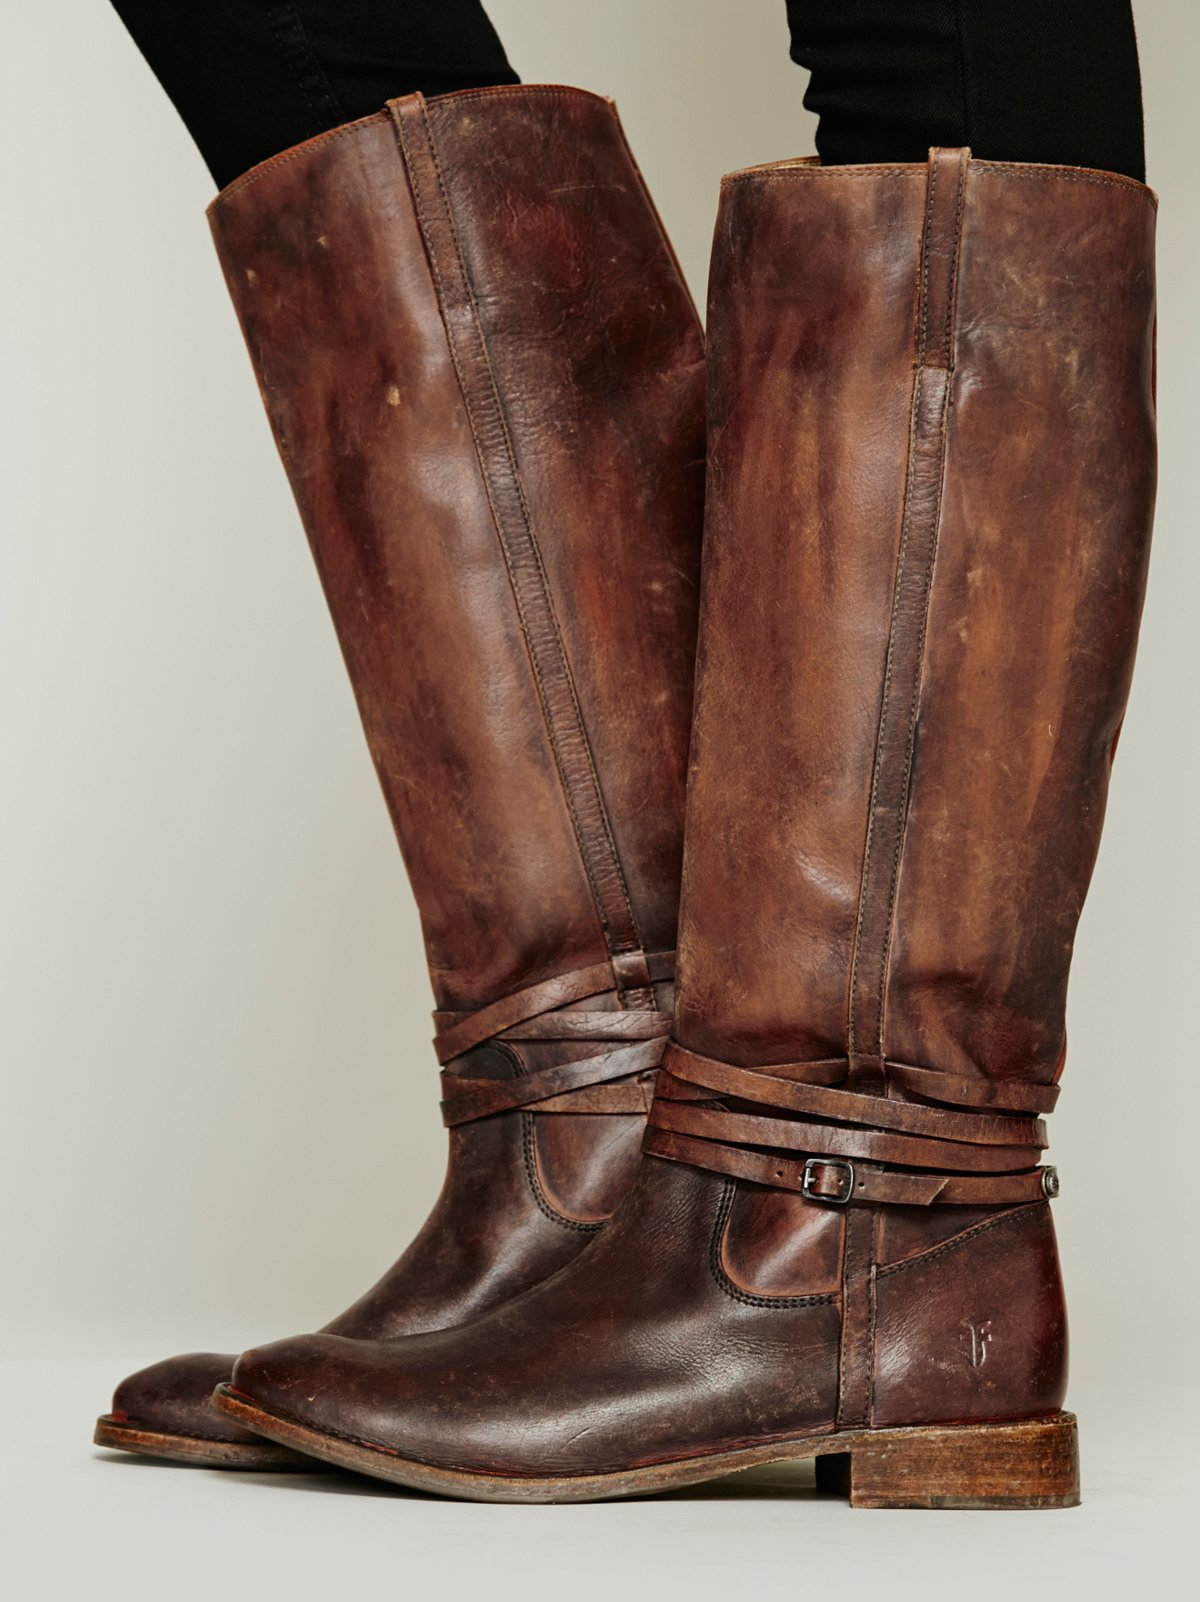 500 Miles Distressed Tall Boot